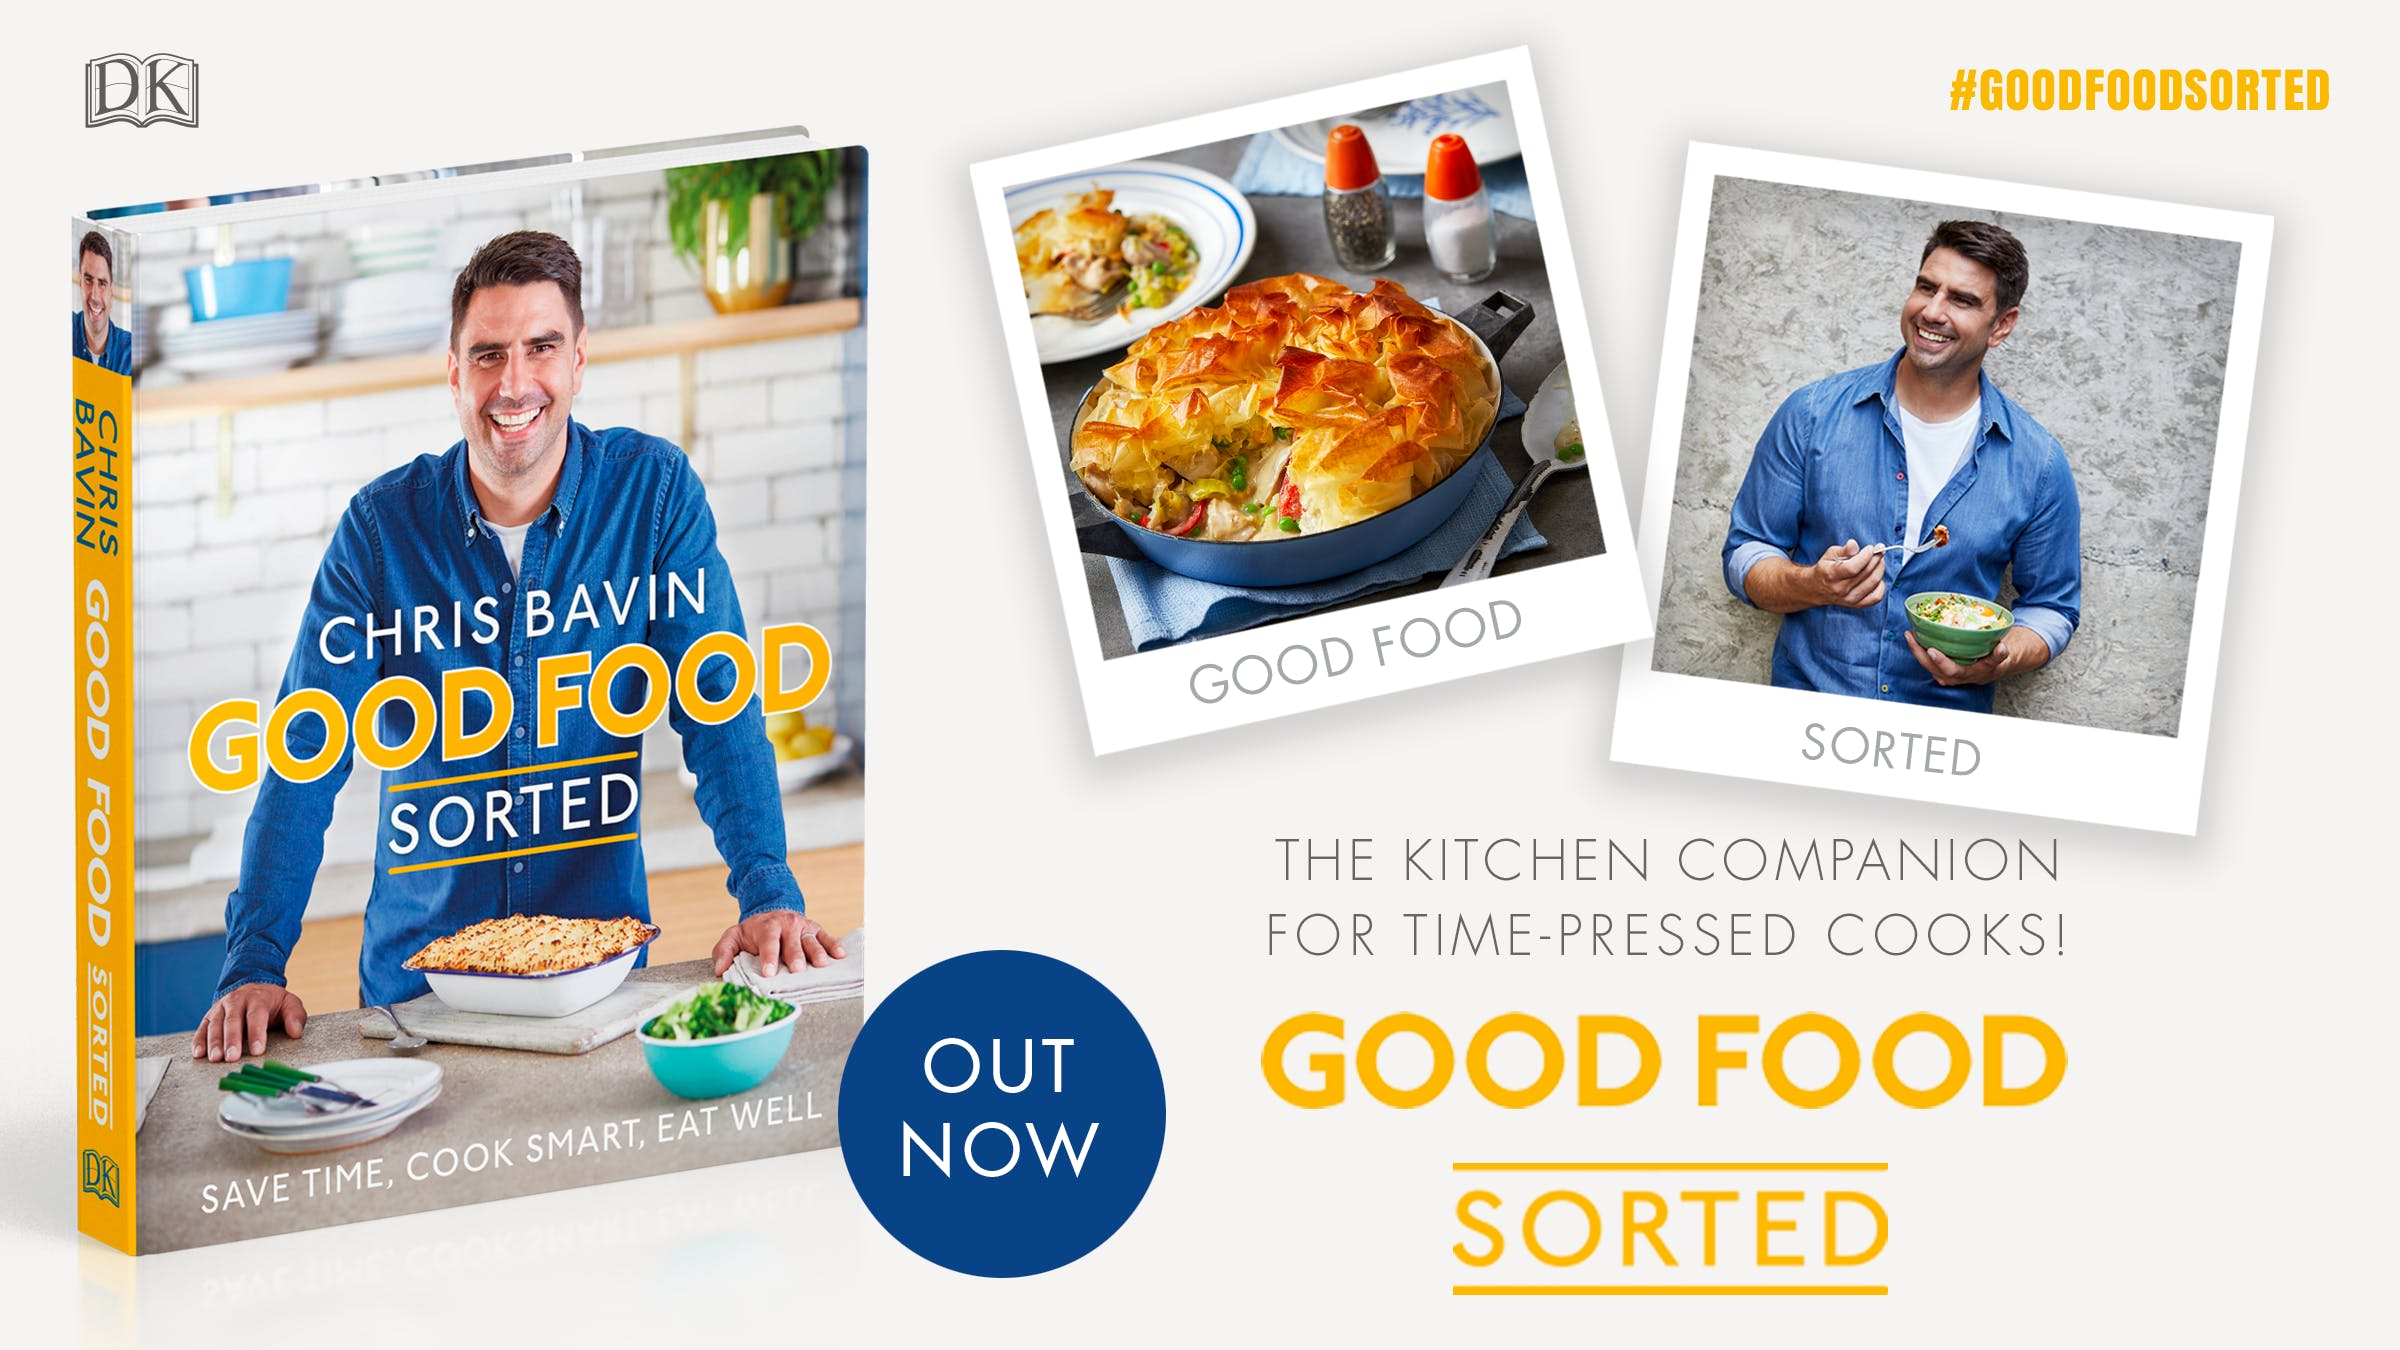 10 quick and healthy dinner ideas from Chris Bavin